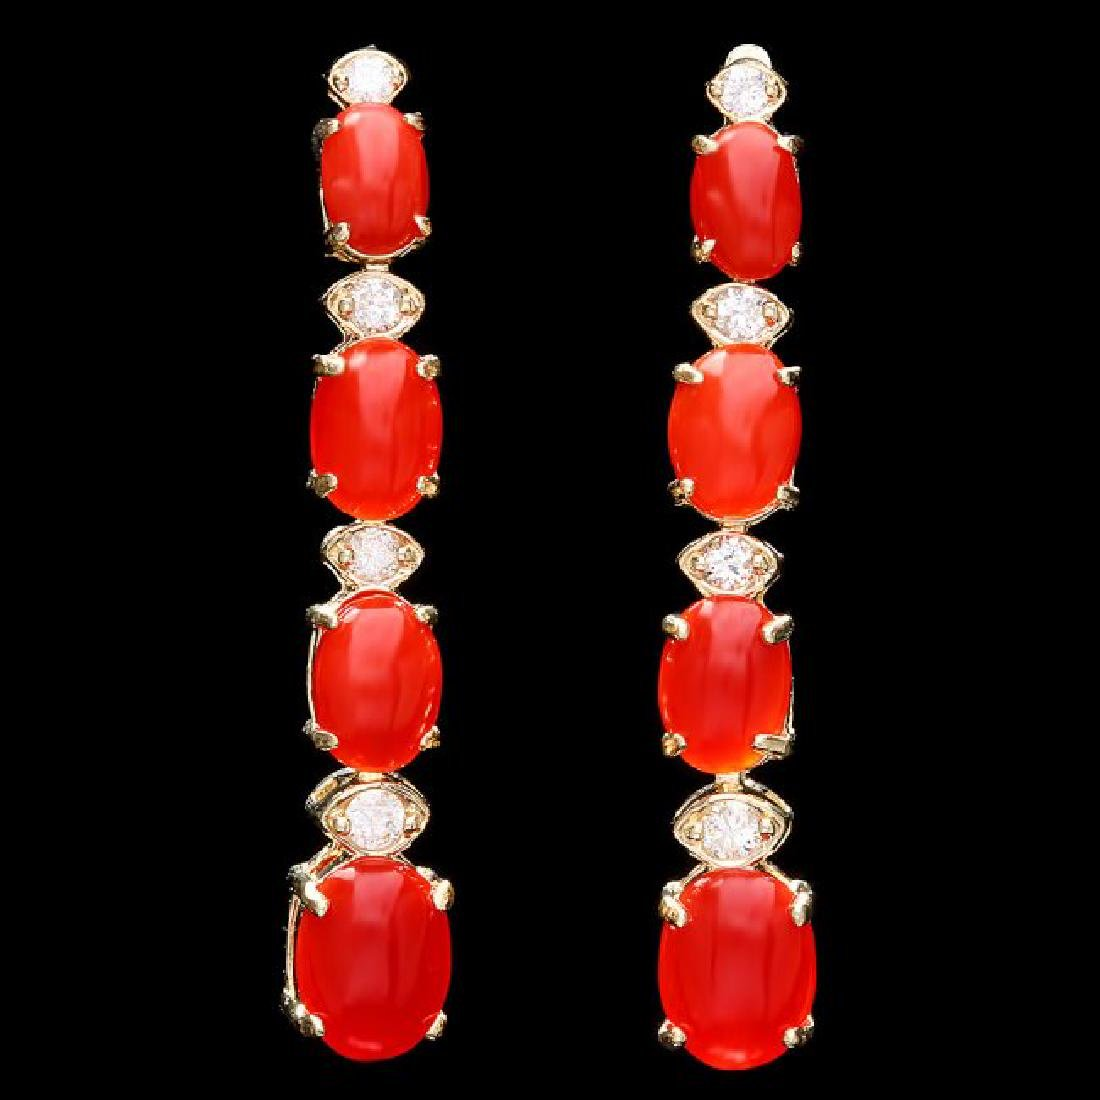 14k Gold 4.00ct Coral 0.35ct Diamond Earrings